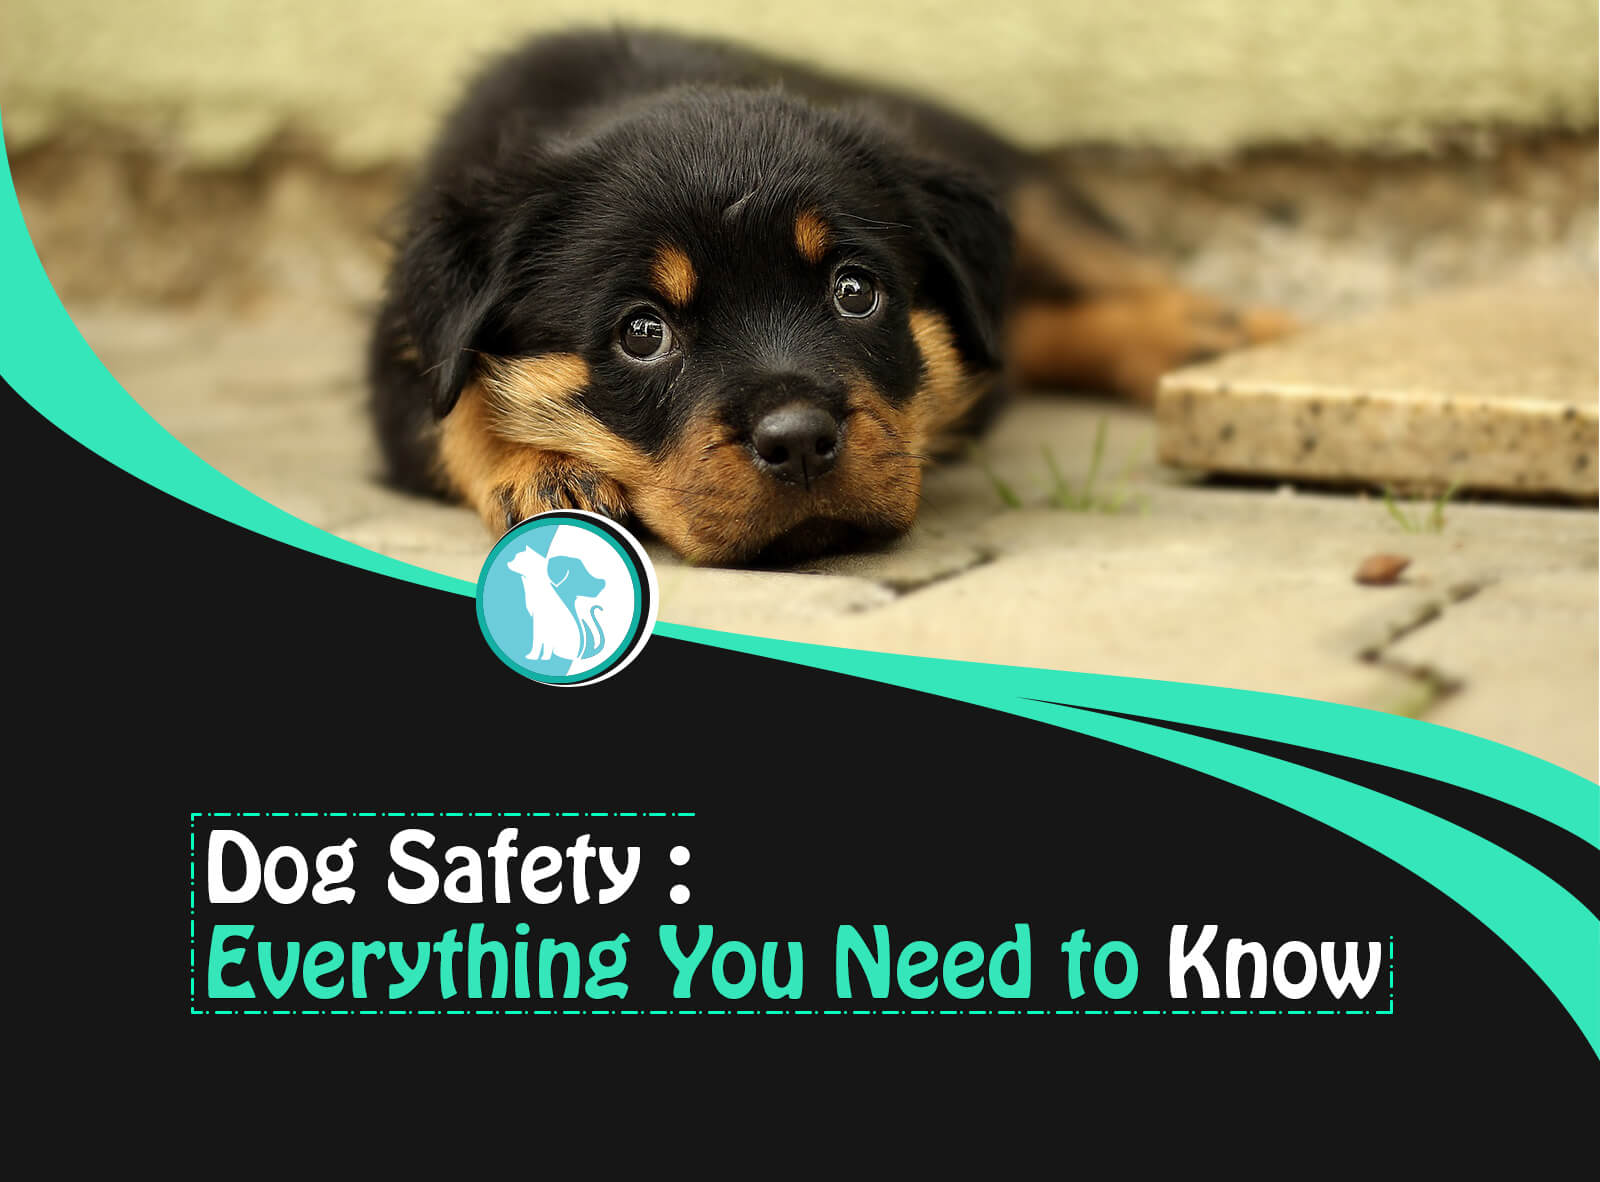 Dog Safety: Everything You Need to Know to Keep Your Dog Safe